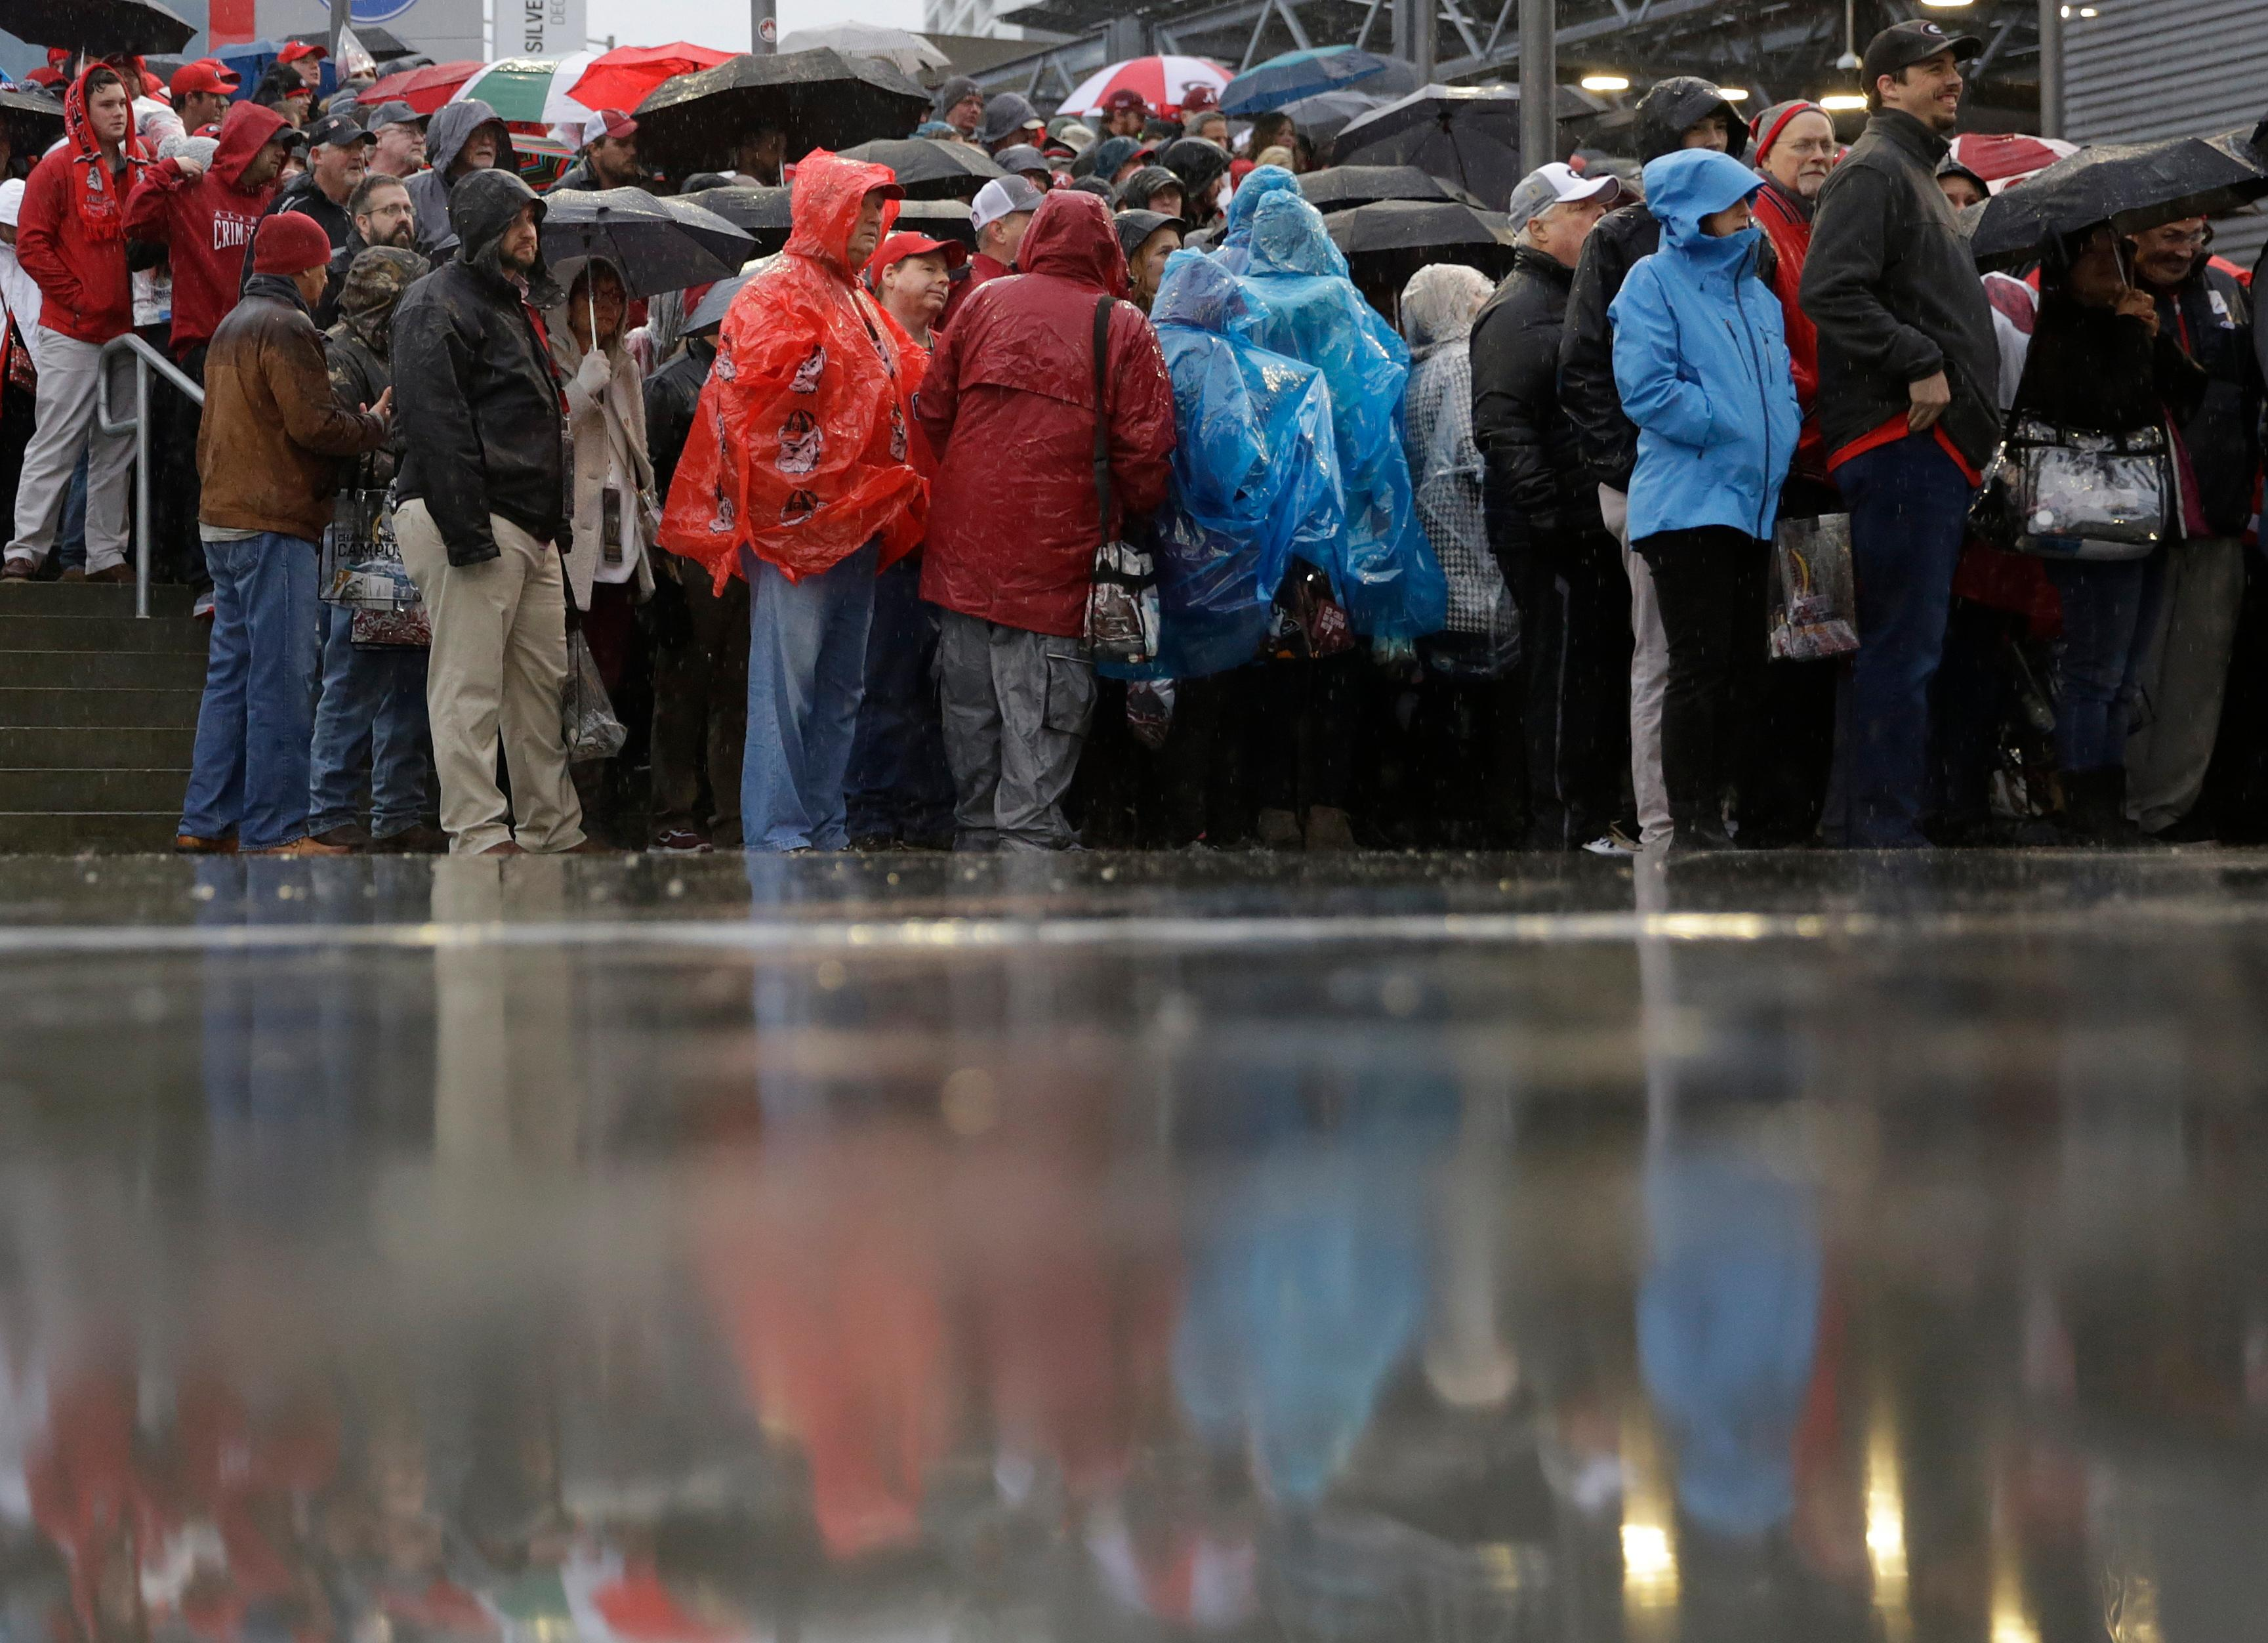 Fans wait in a line outside Mercedes-Benz Stadium before the NCAA college football playoff championship game between Georgia and Alabama Monday, Jan. 8, 2018, in Atlanta. (AP Photo/David Goldman)